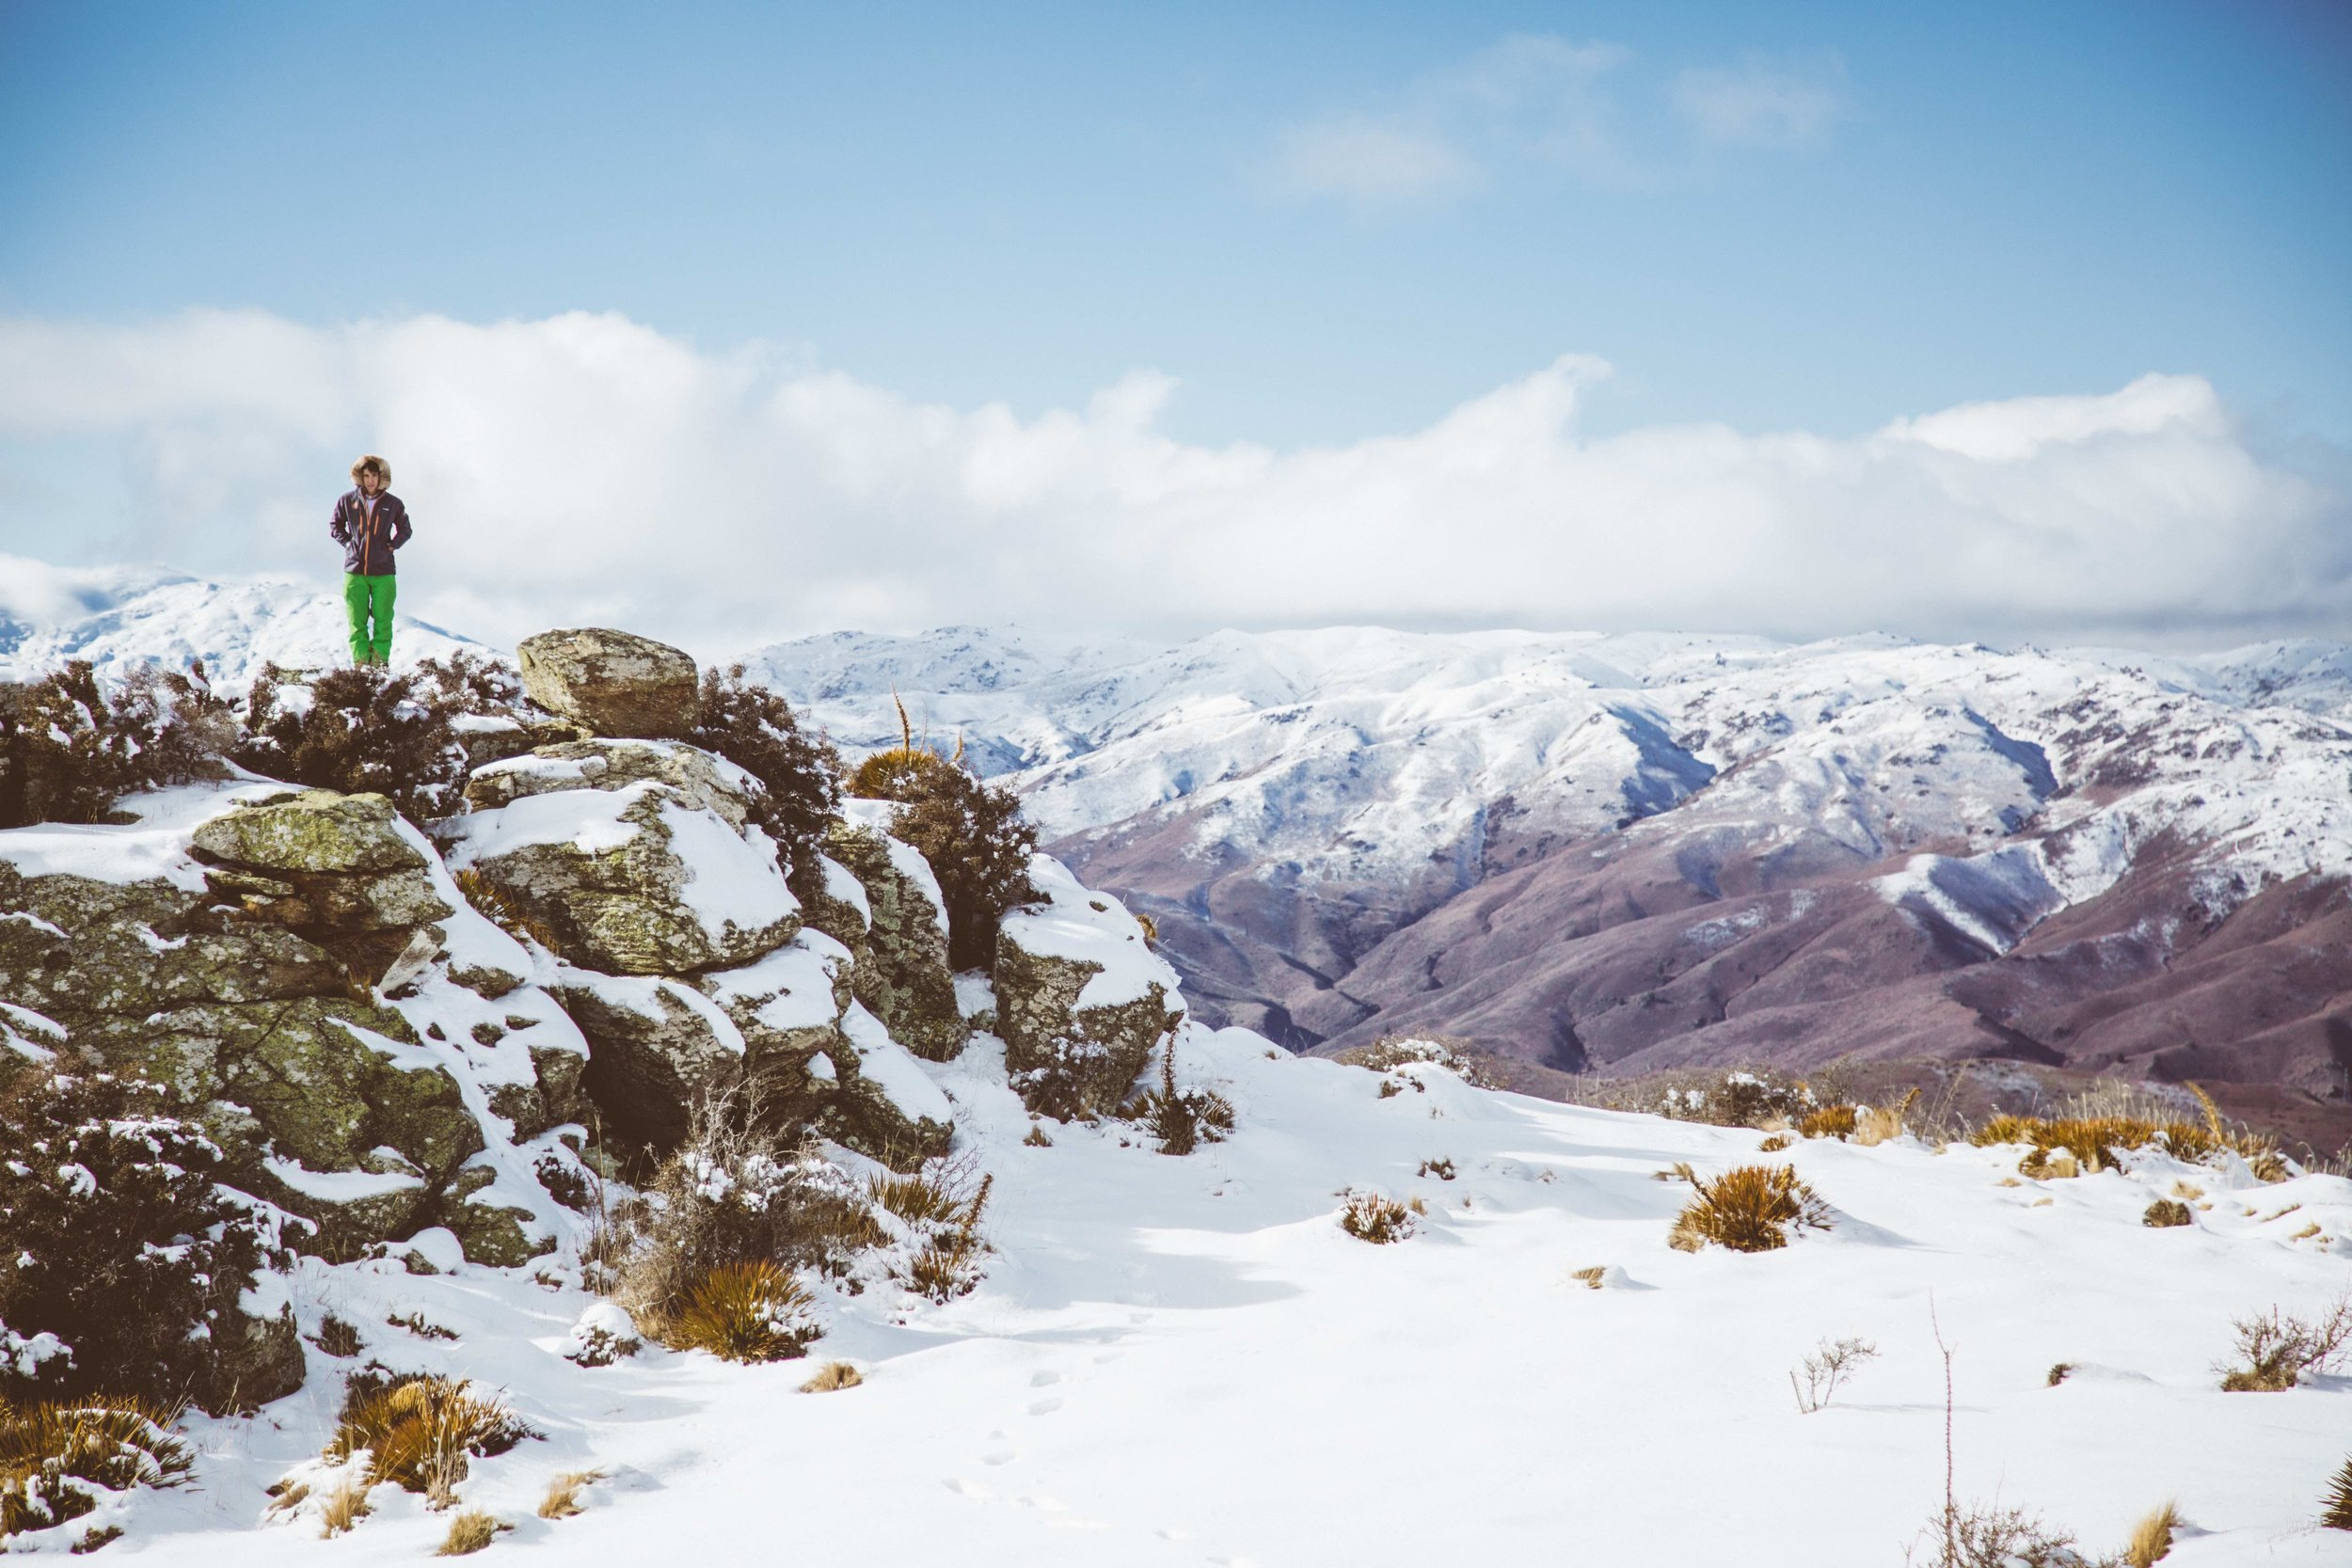 simon goodburn 5th element expeditions